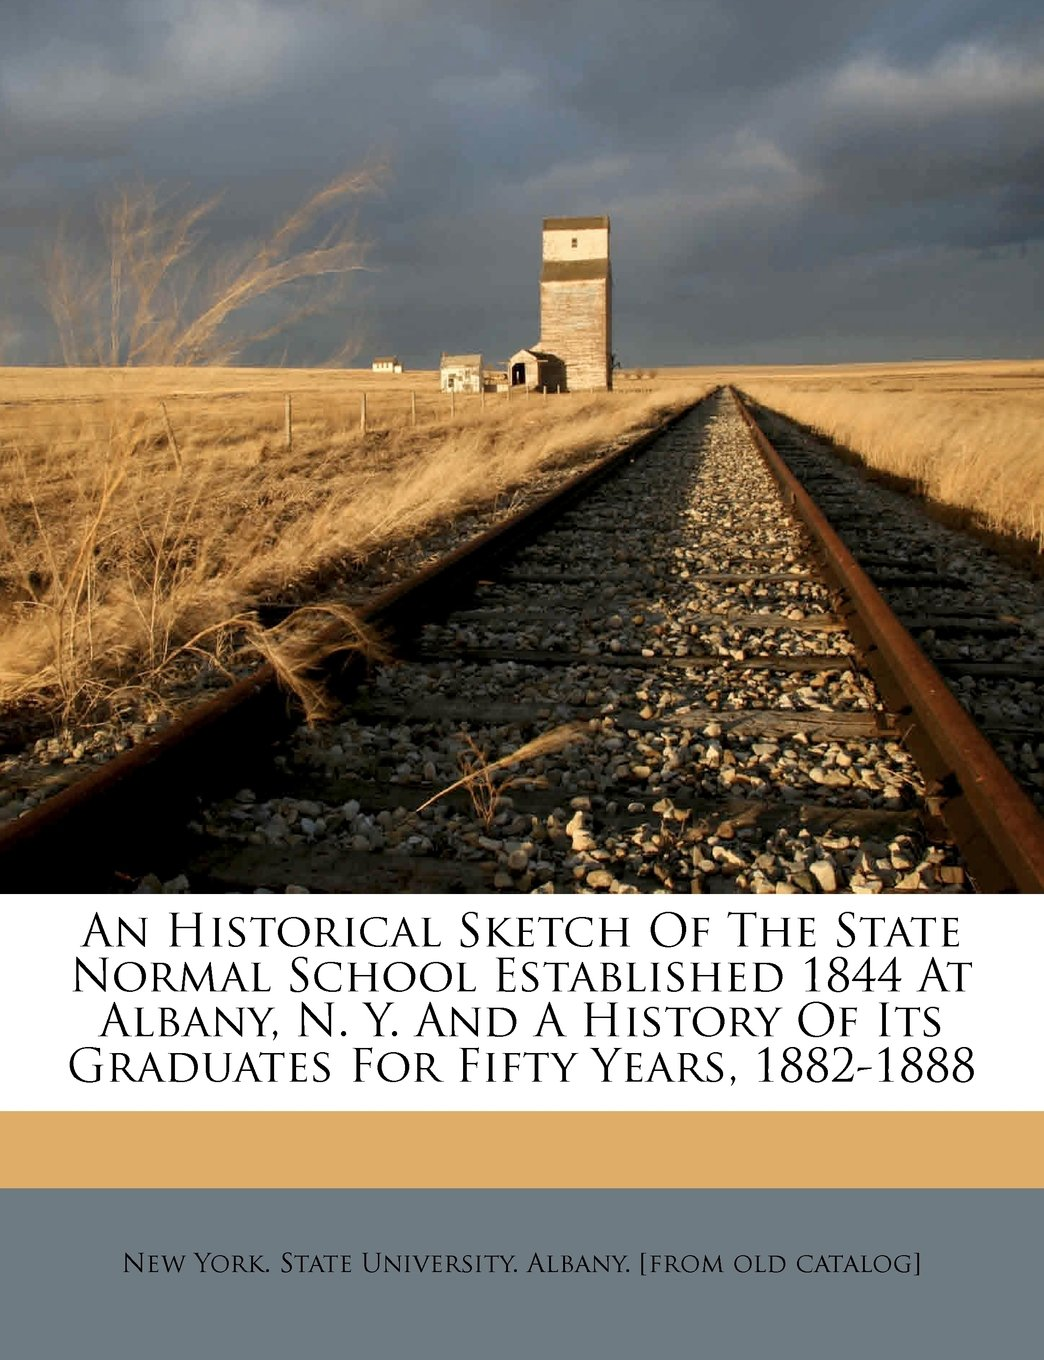 An Historical Sketch Of The State Normal School Established 1844 At Albany, N. Y. And A History Of Its Graduates For Fifty Years, 1882-1888 pdf